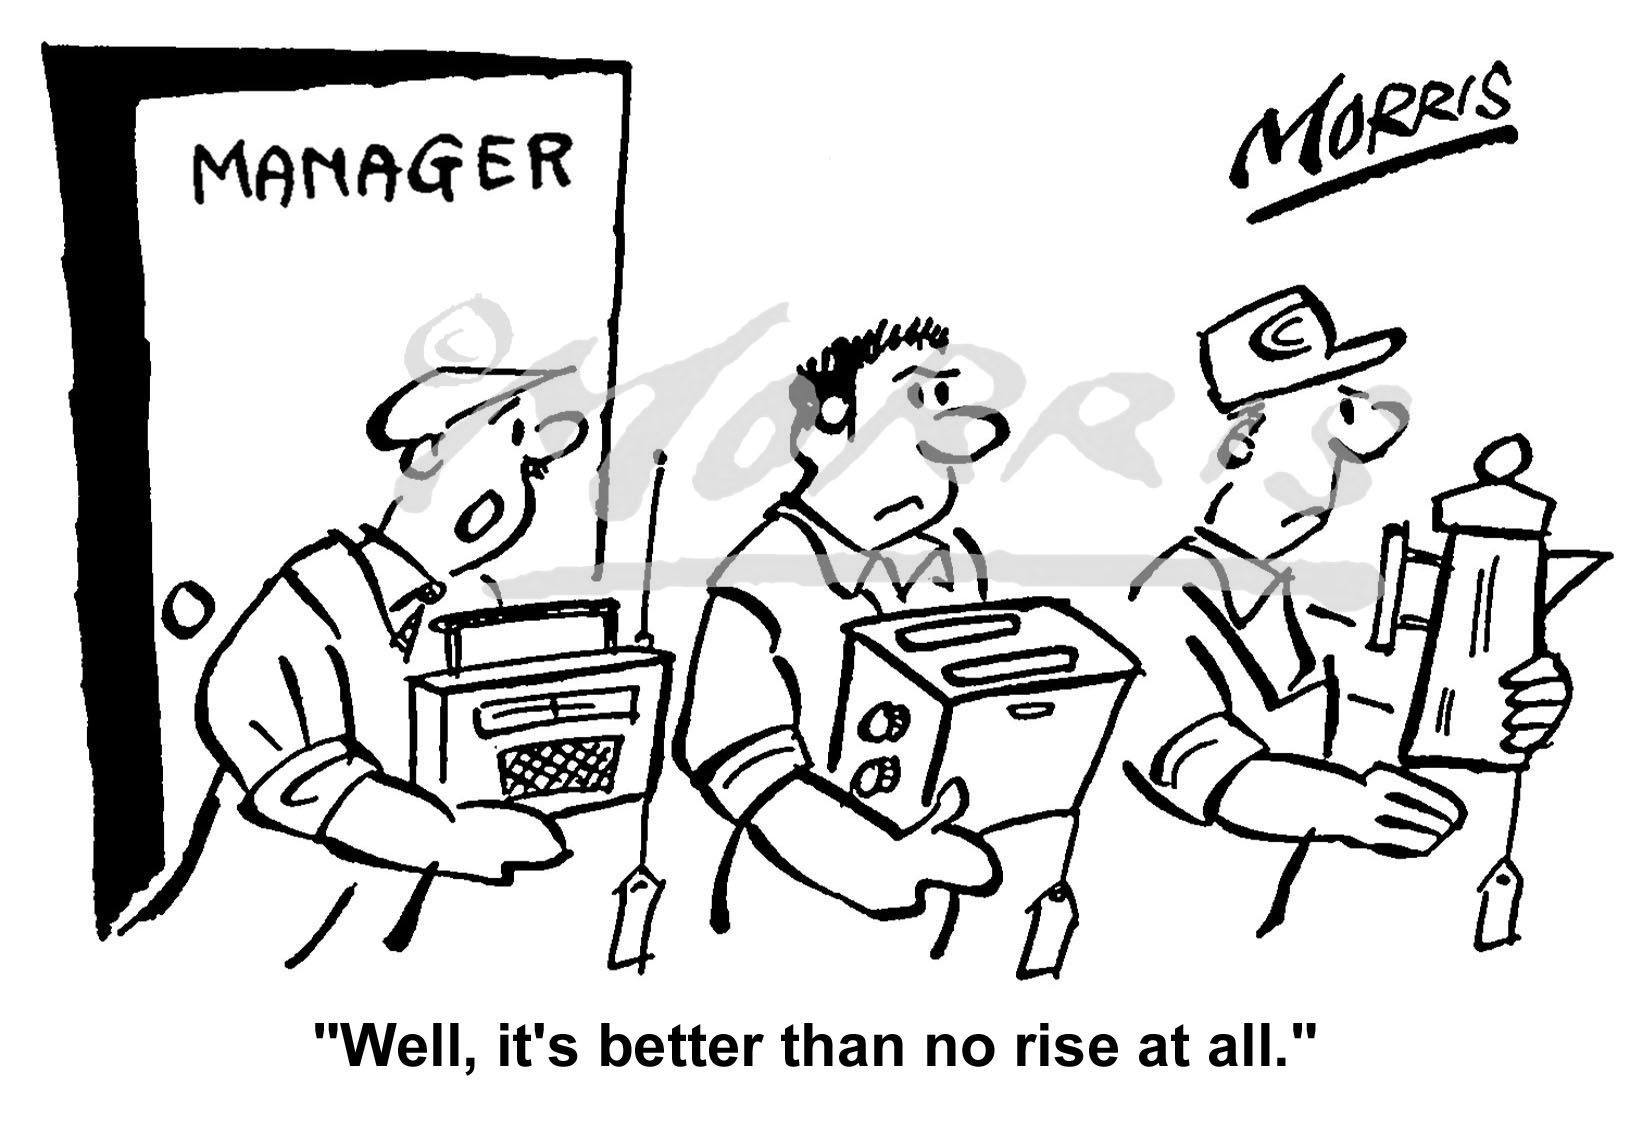 Manager workforce bonus cartoon Ref: 0655bw